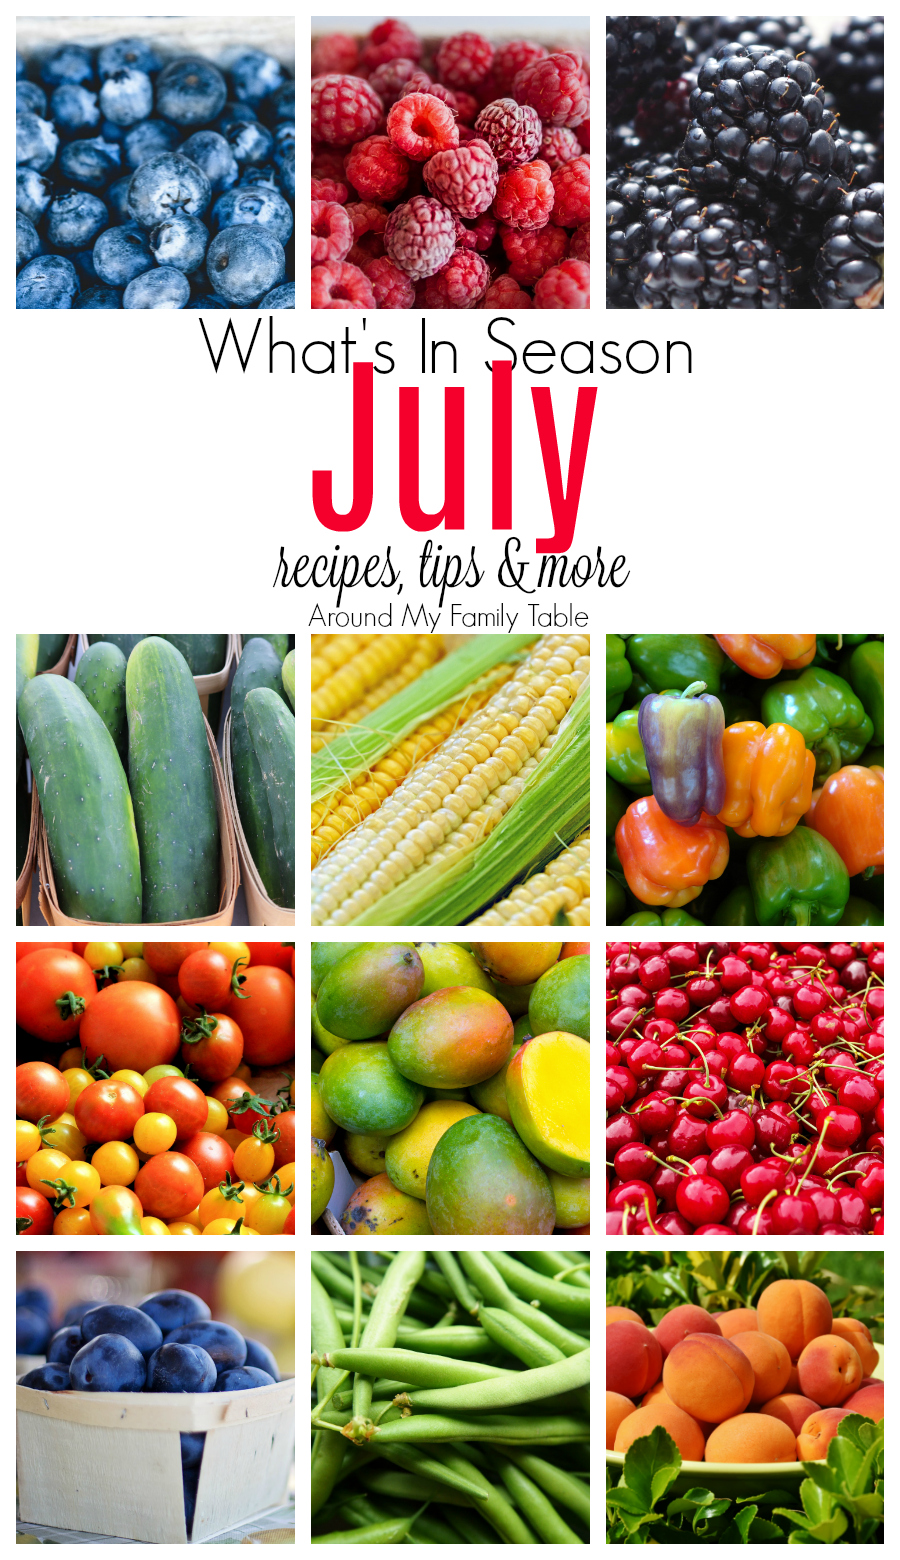 There is so much delicious produce in July and if you are like me, I try to save money at the store by buying produce that's in season.  It's cheaper, it's fresher, and it didn't travel very far to get to your table. My July — What's in Season Guide is your guide to July Seasonal Produce along with recipes, tips, and more!